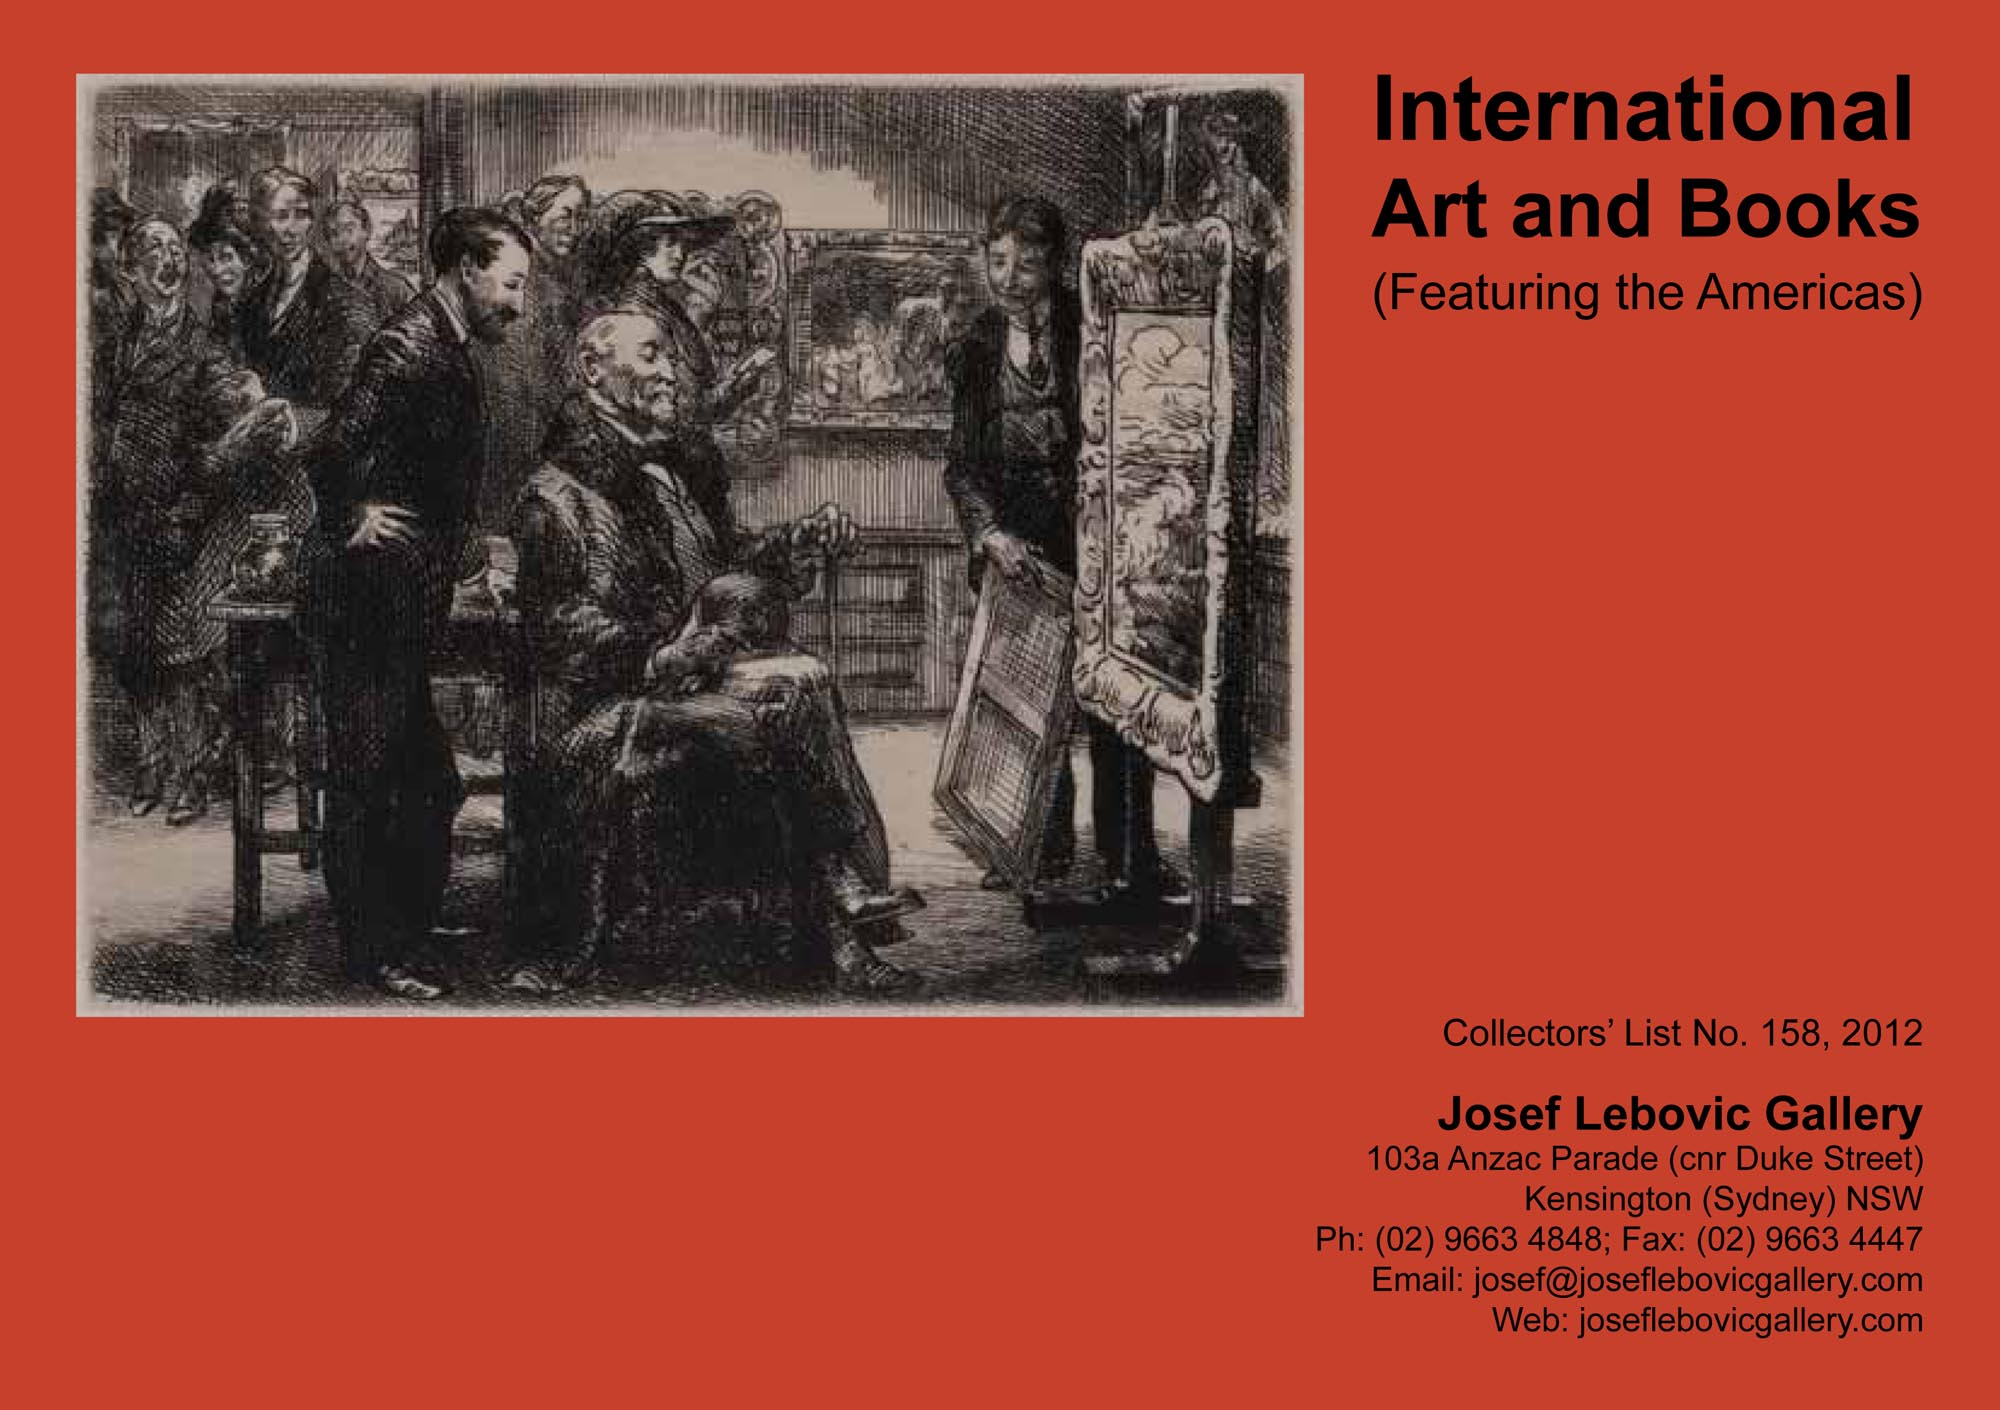 158 - International Art and Books